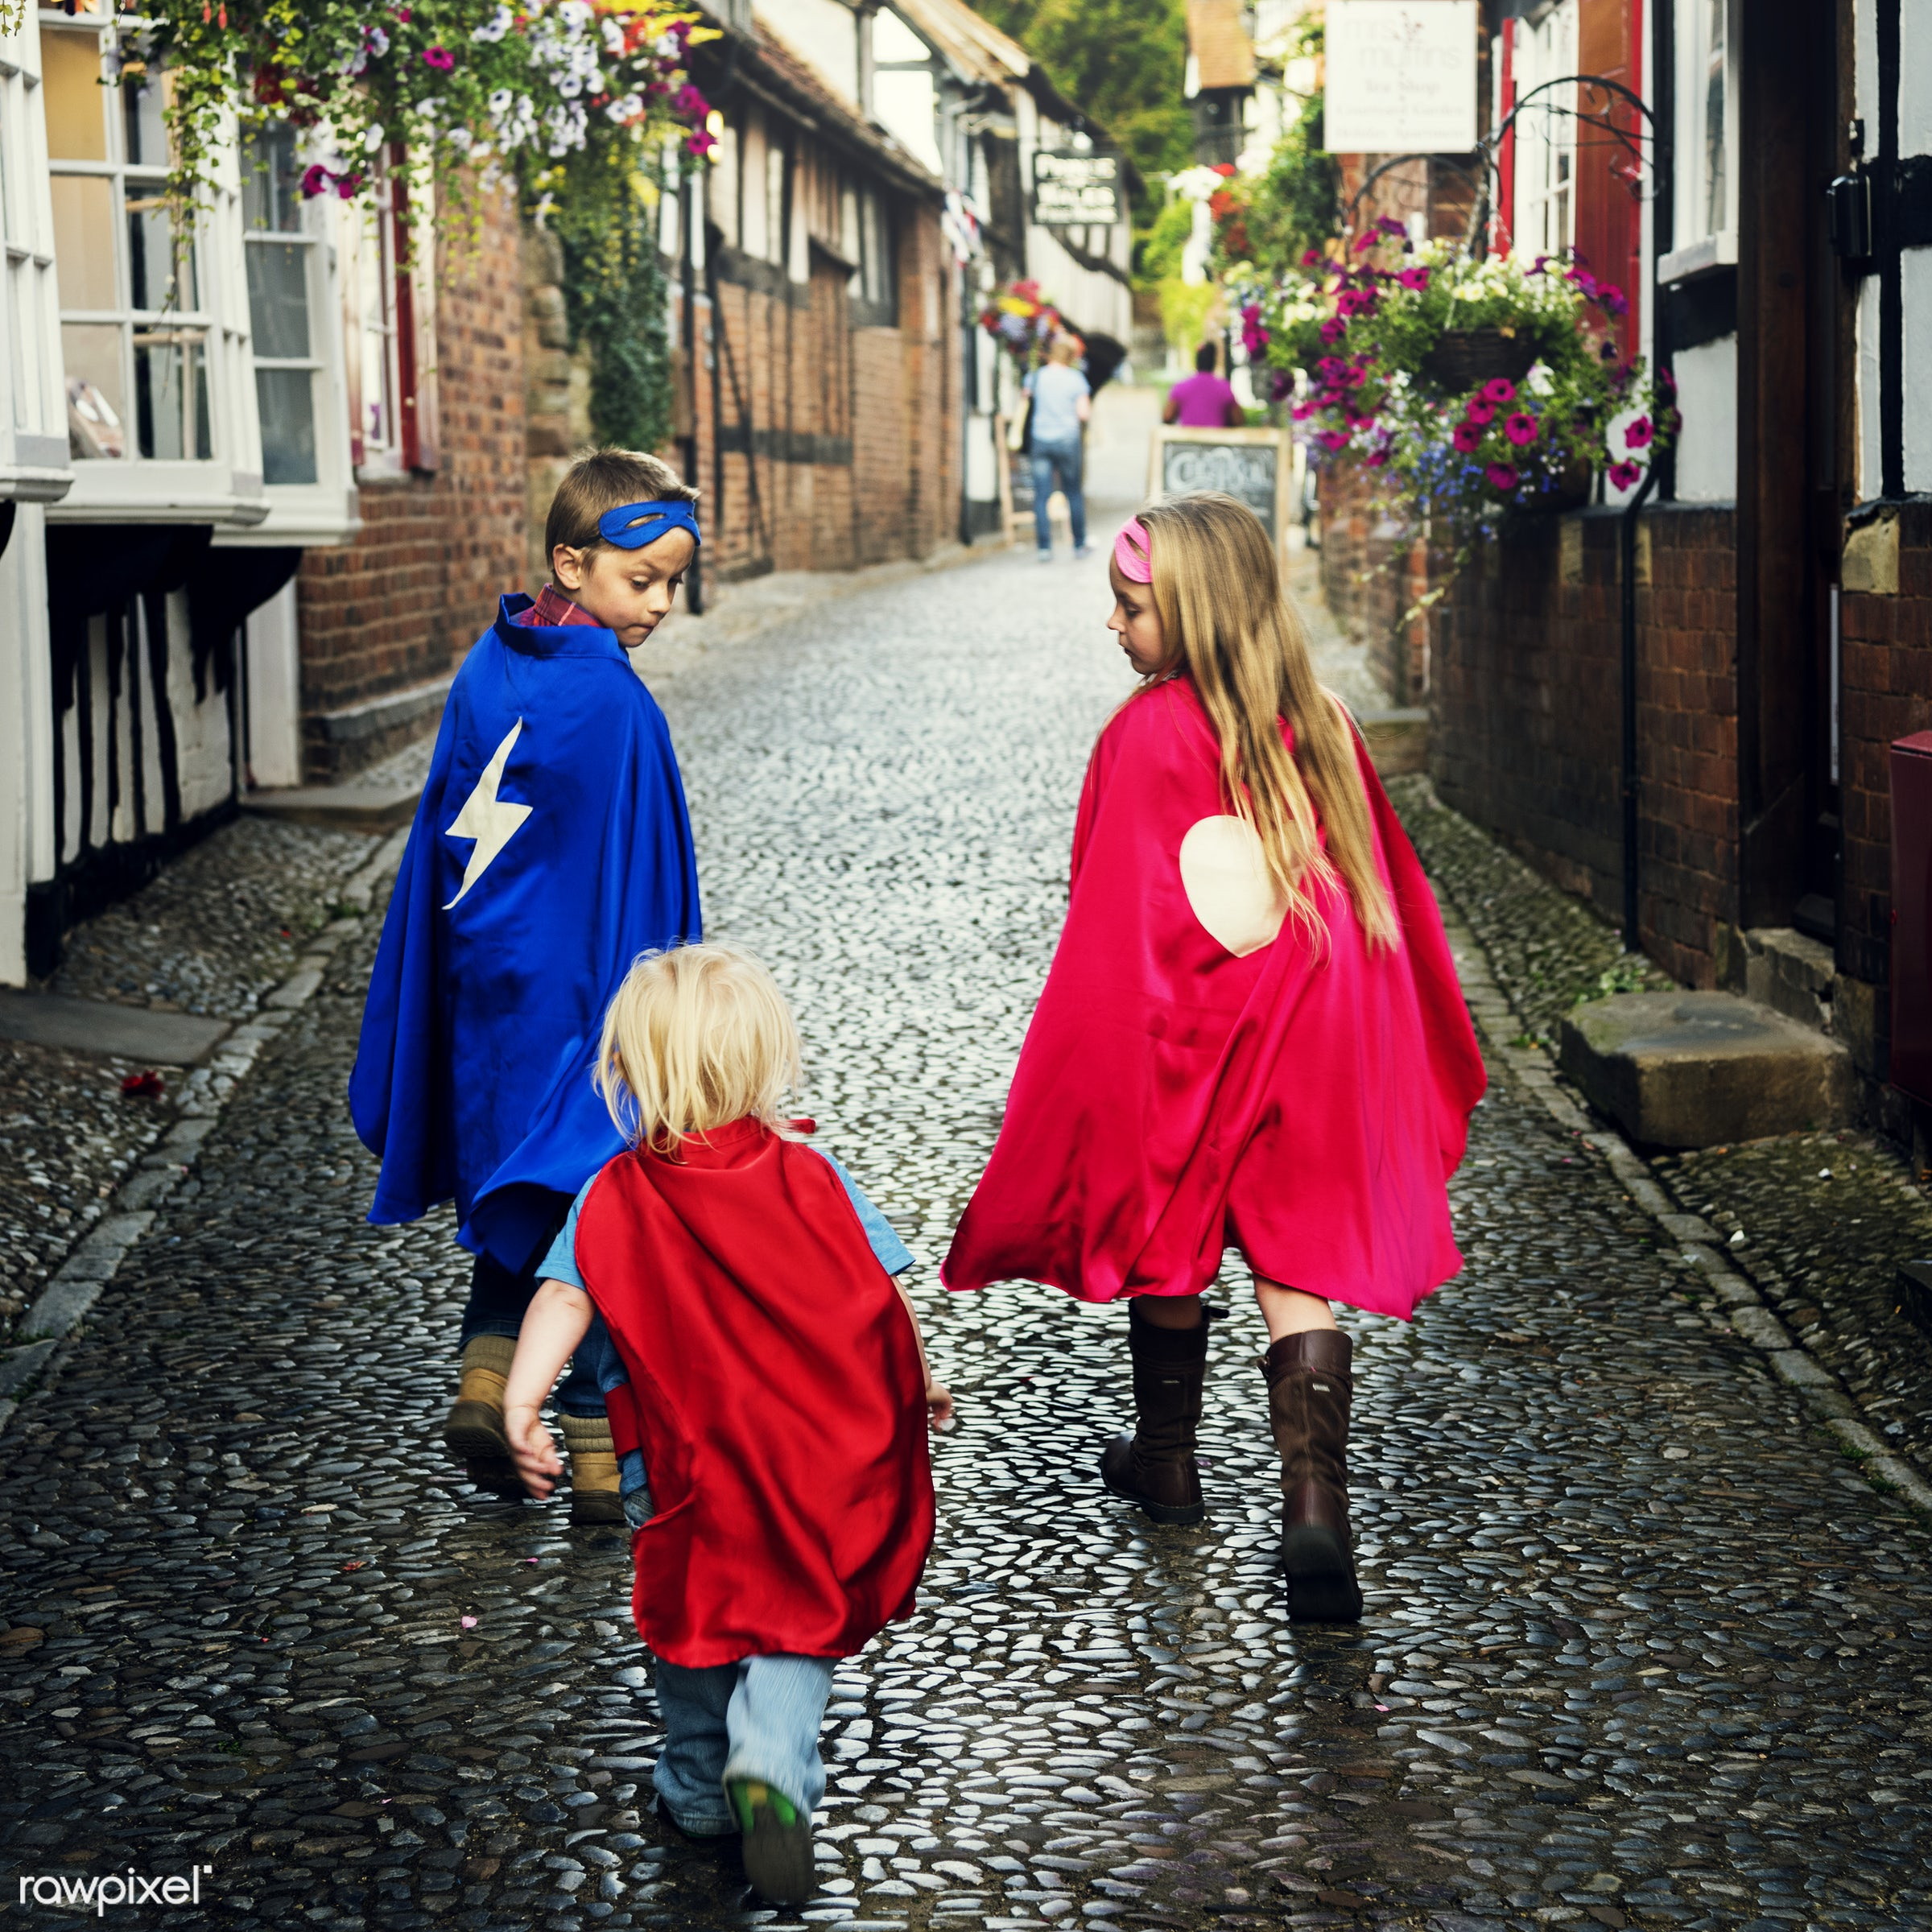 activity, alley, aspirations, brave, brother, buddy, cheerful, child, childhood, colourful, confidence, costume,...